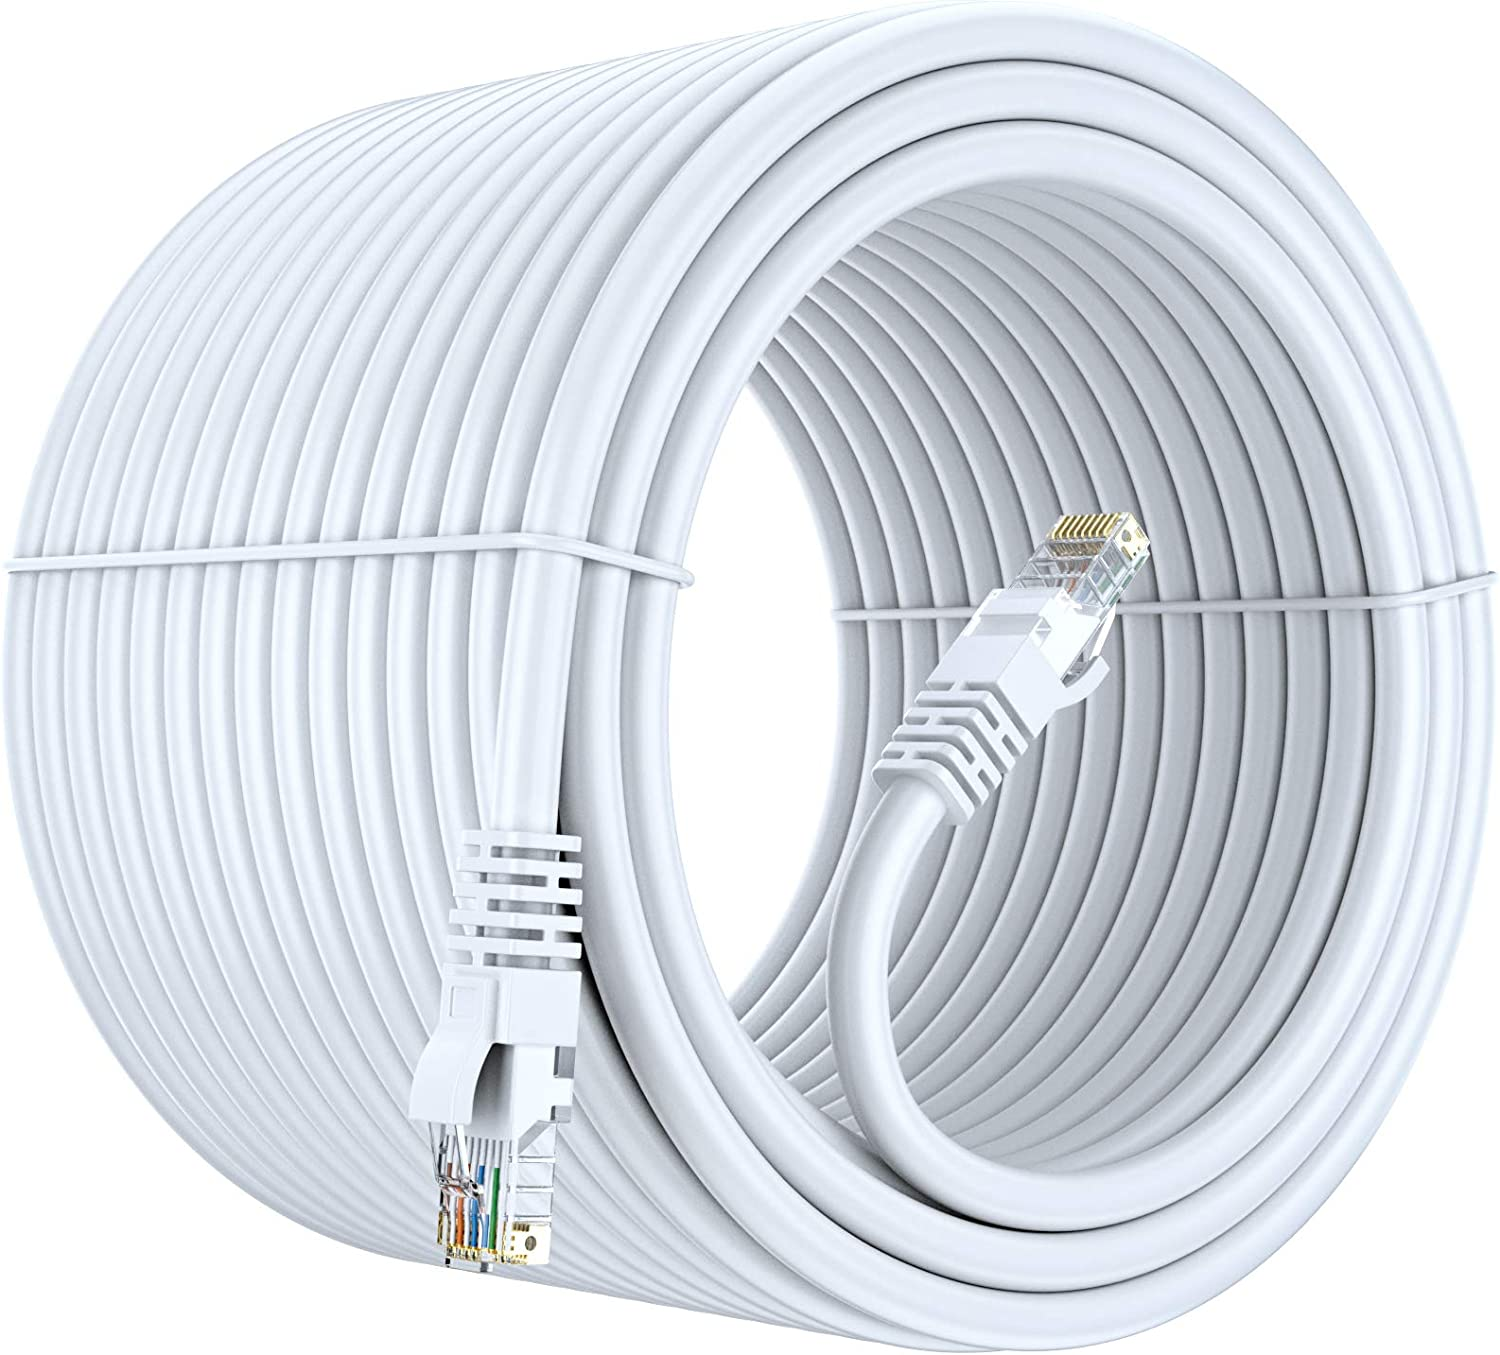 Cat6 Ethernet Cable, 300 ft